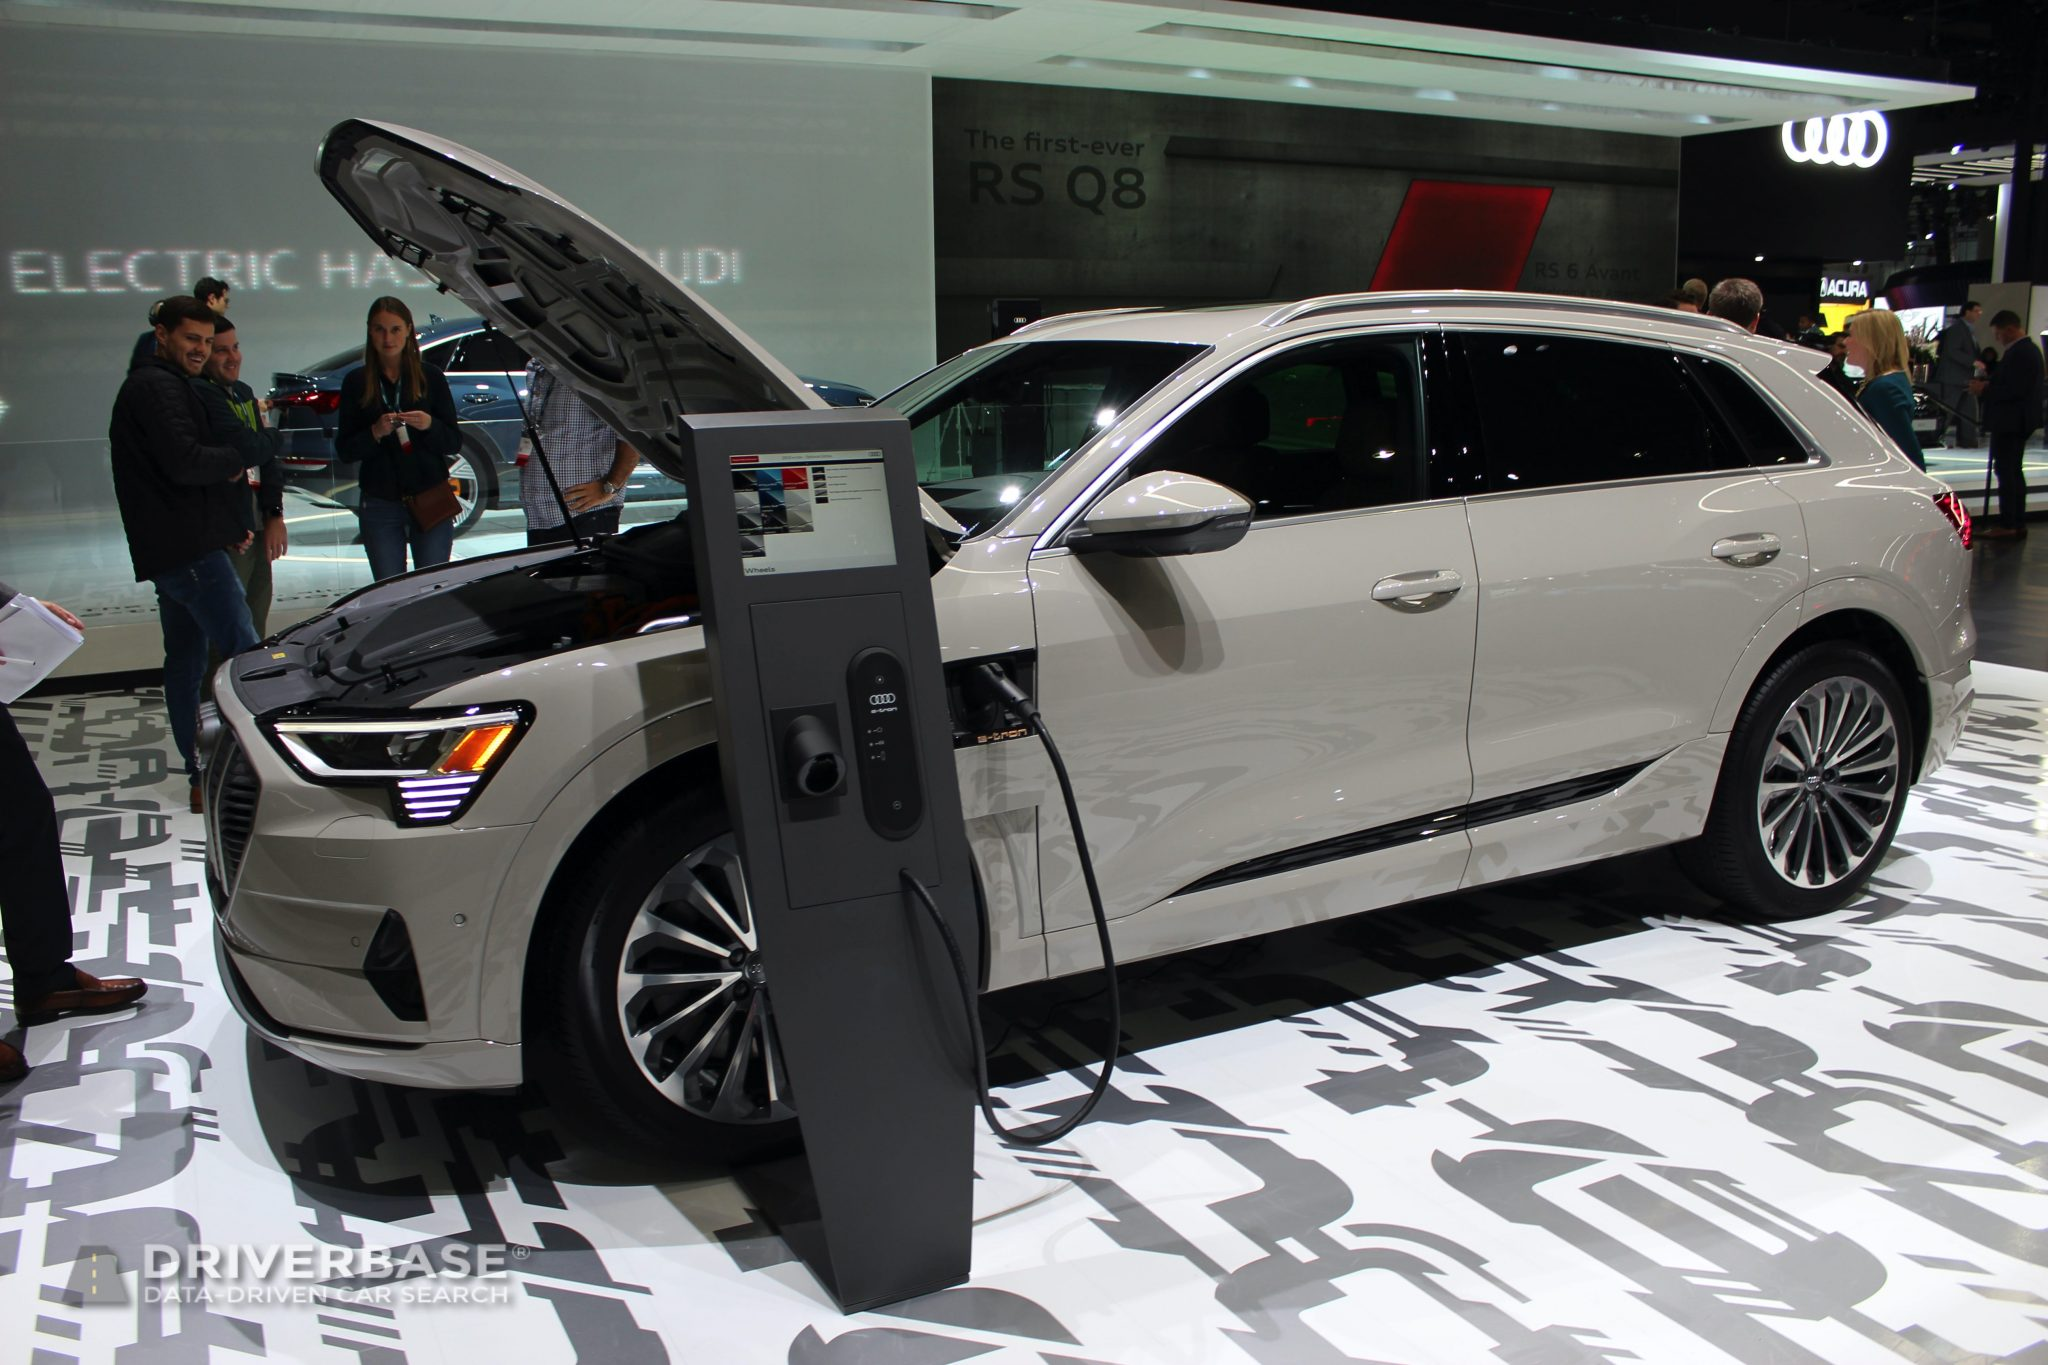 2020 Audi e-tron Quattro at the 2019 Los Angeles Auto Show